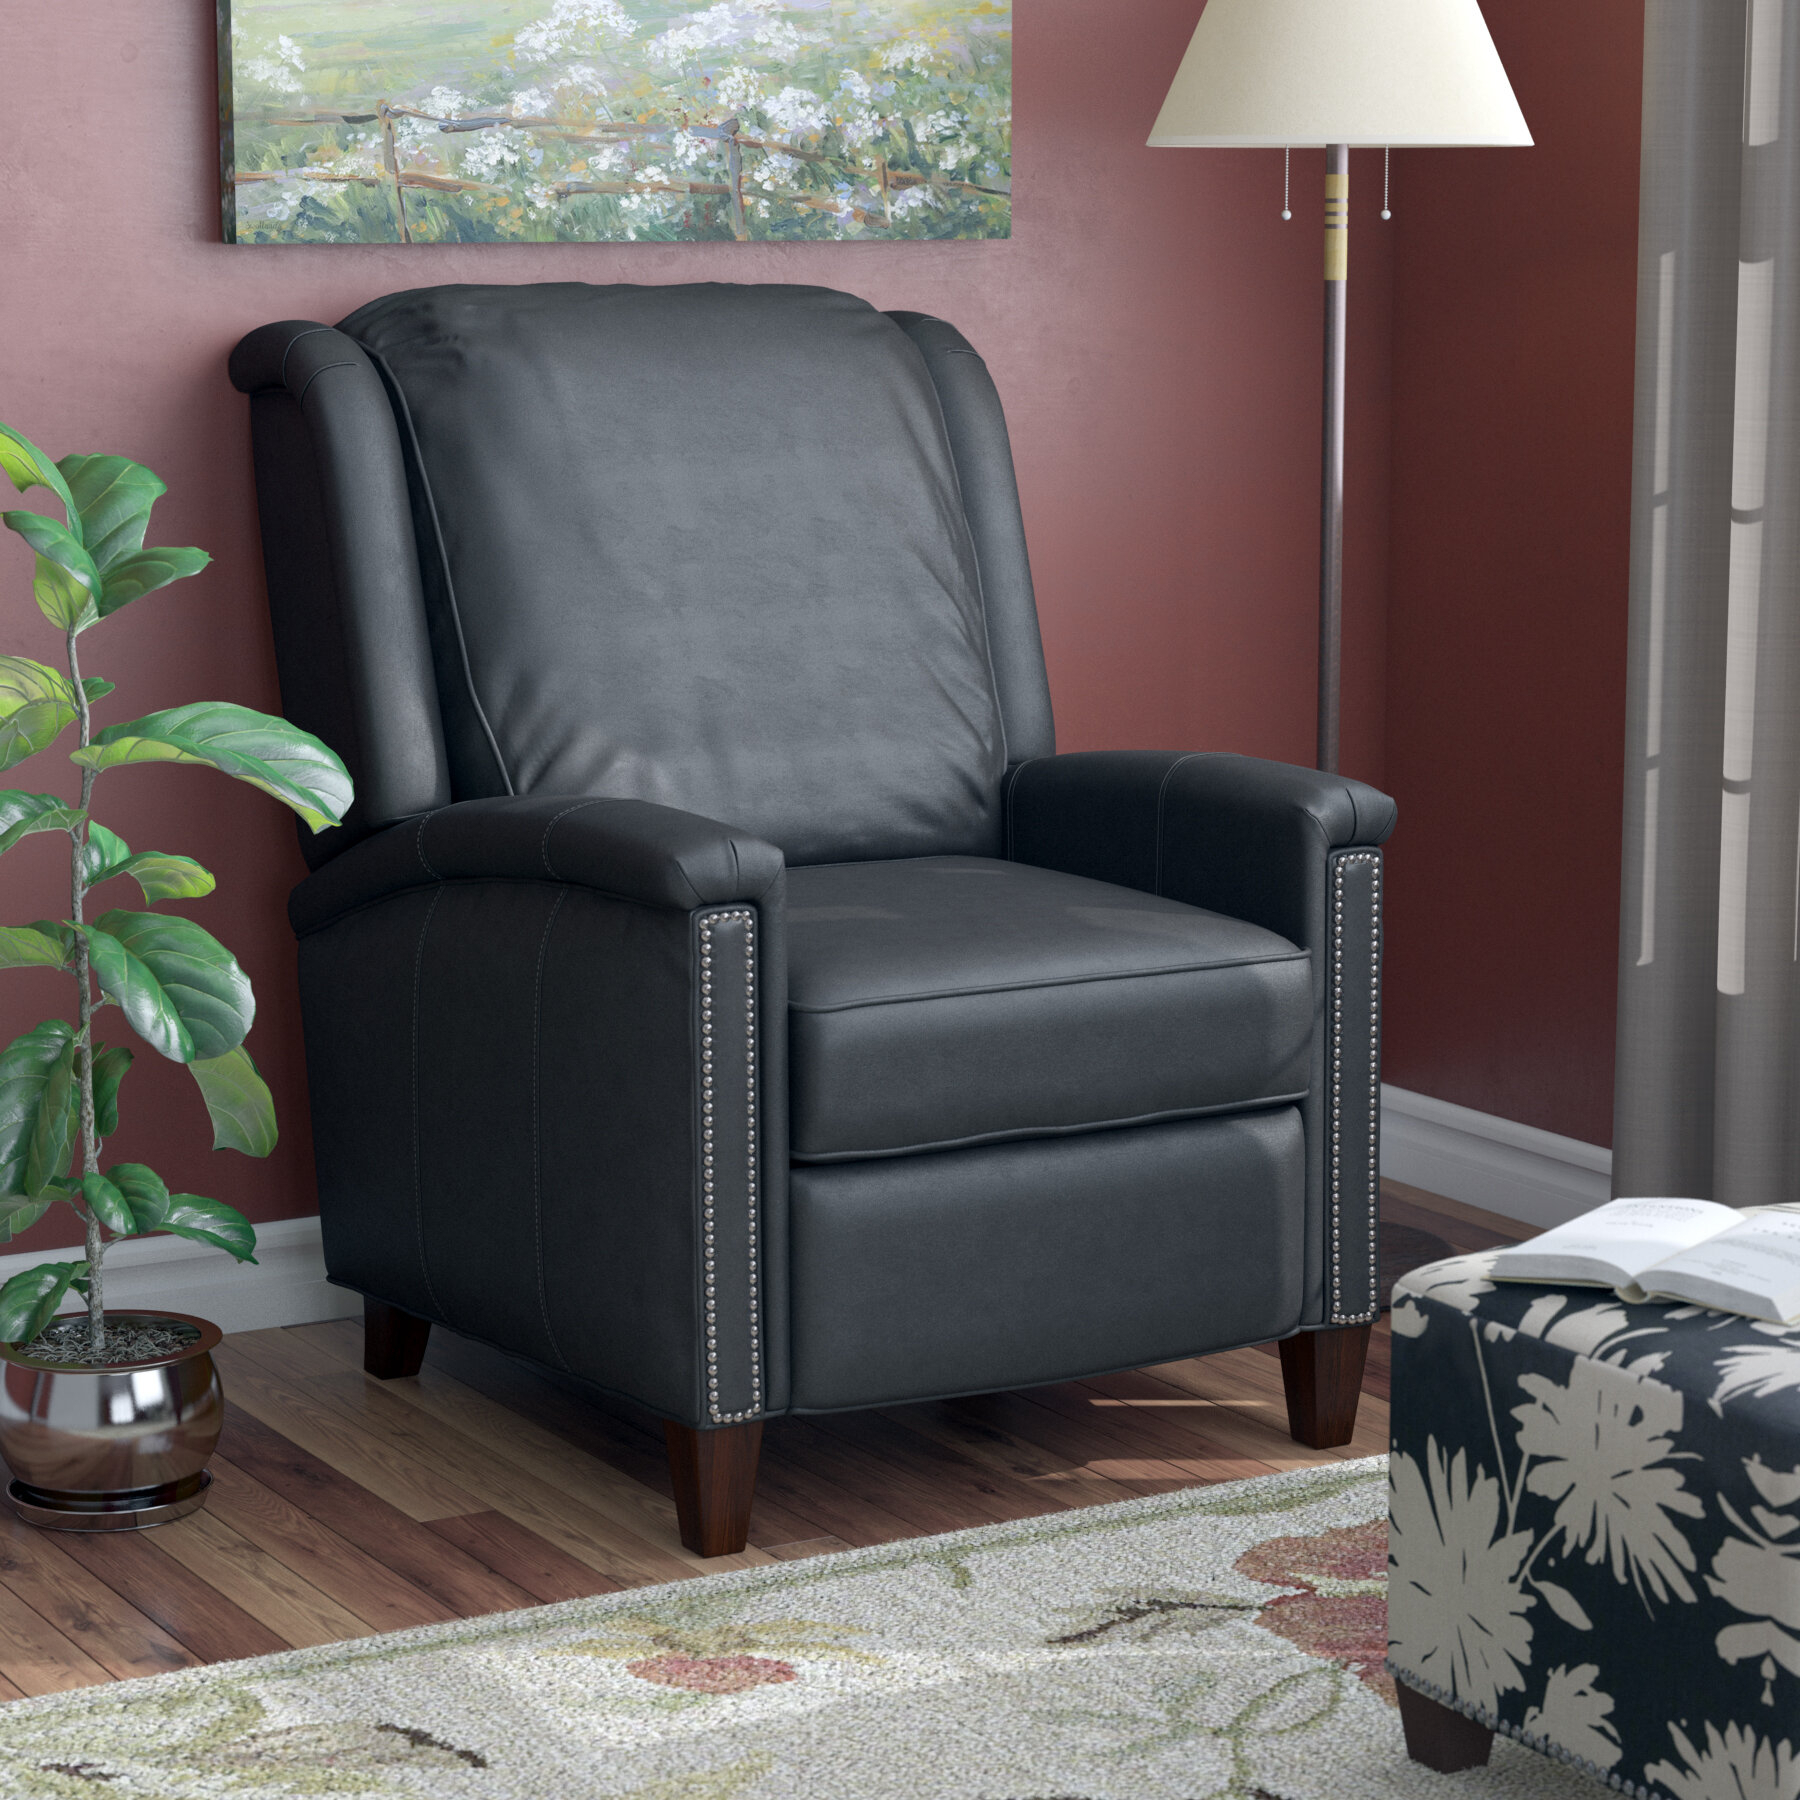 Leather Manual Recliner With Regard To Coomer Faux Leather Barrel Chairs (View 11 of 15)